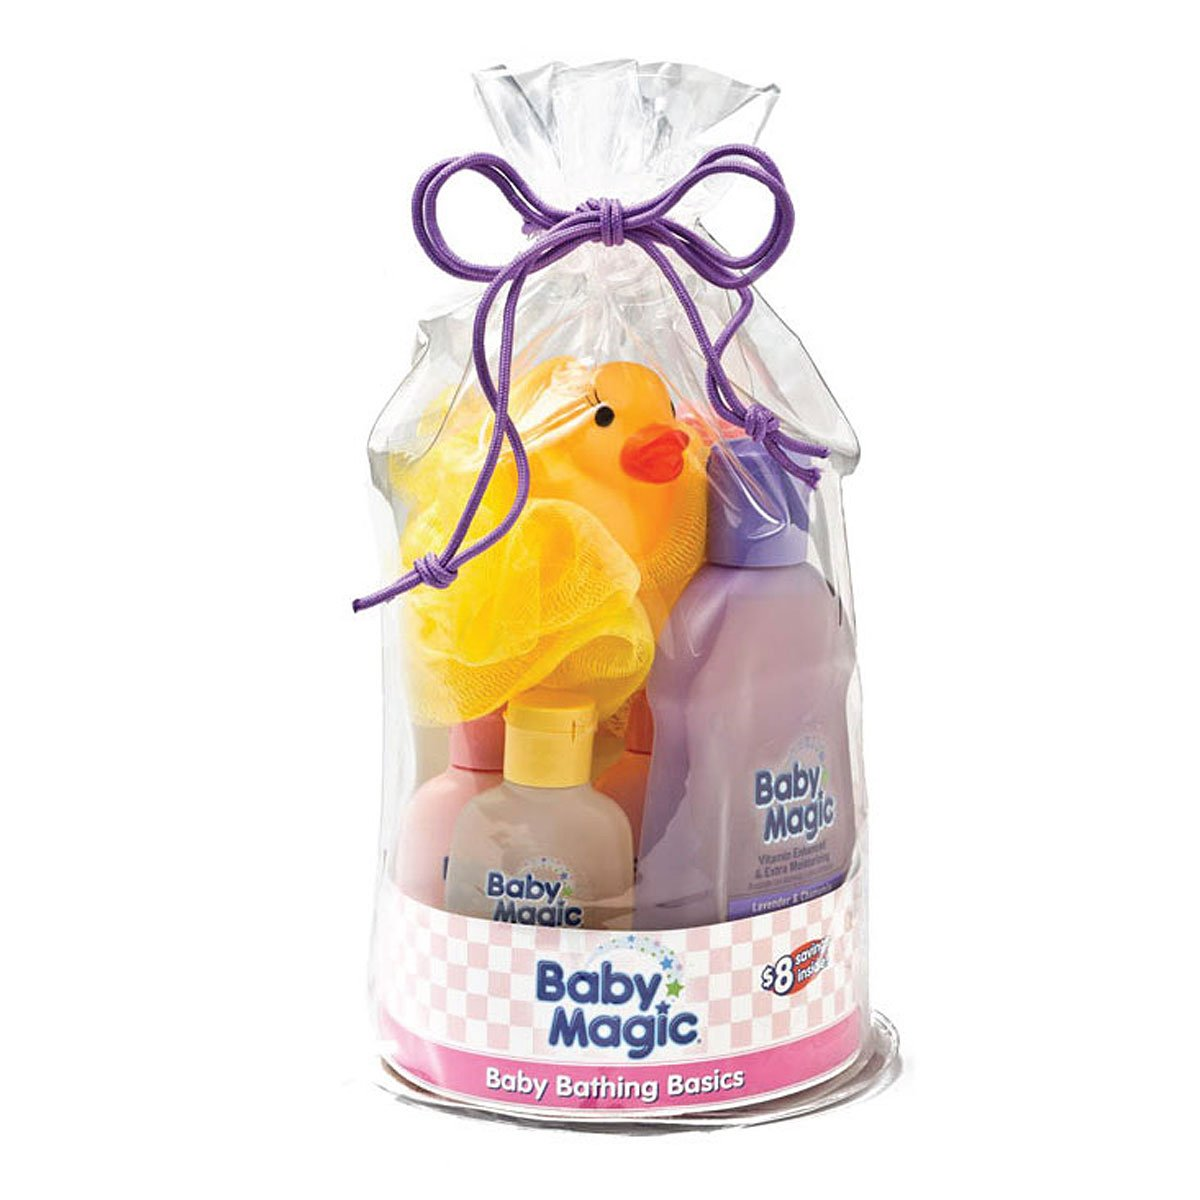 Amazon.com: Baby Magic Baby Bathing Basics Gift Set (Pack of 2 ...